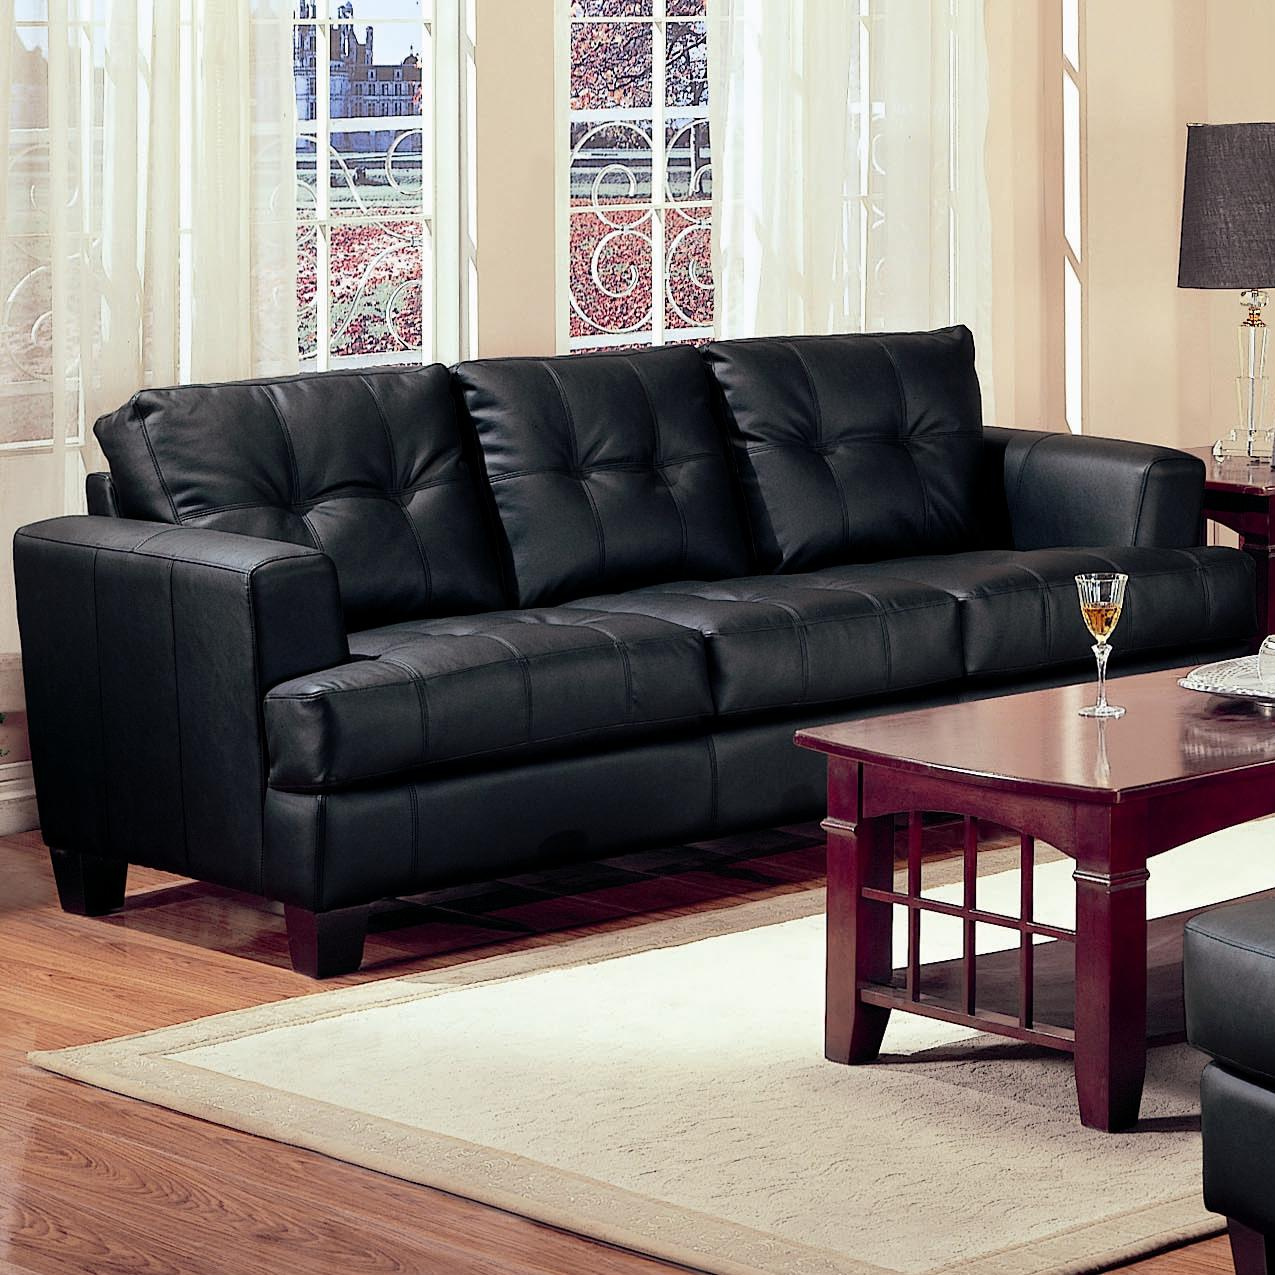 Coaster Furniture Samuel Black Sofa Click To Enlarge ...